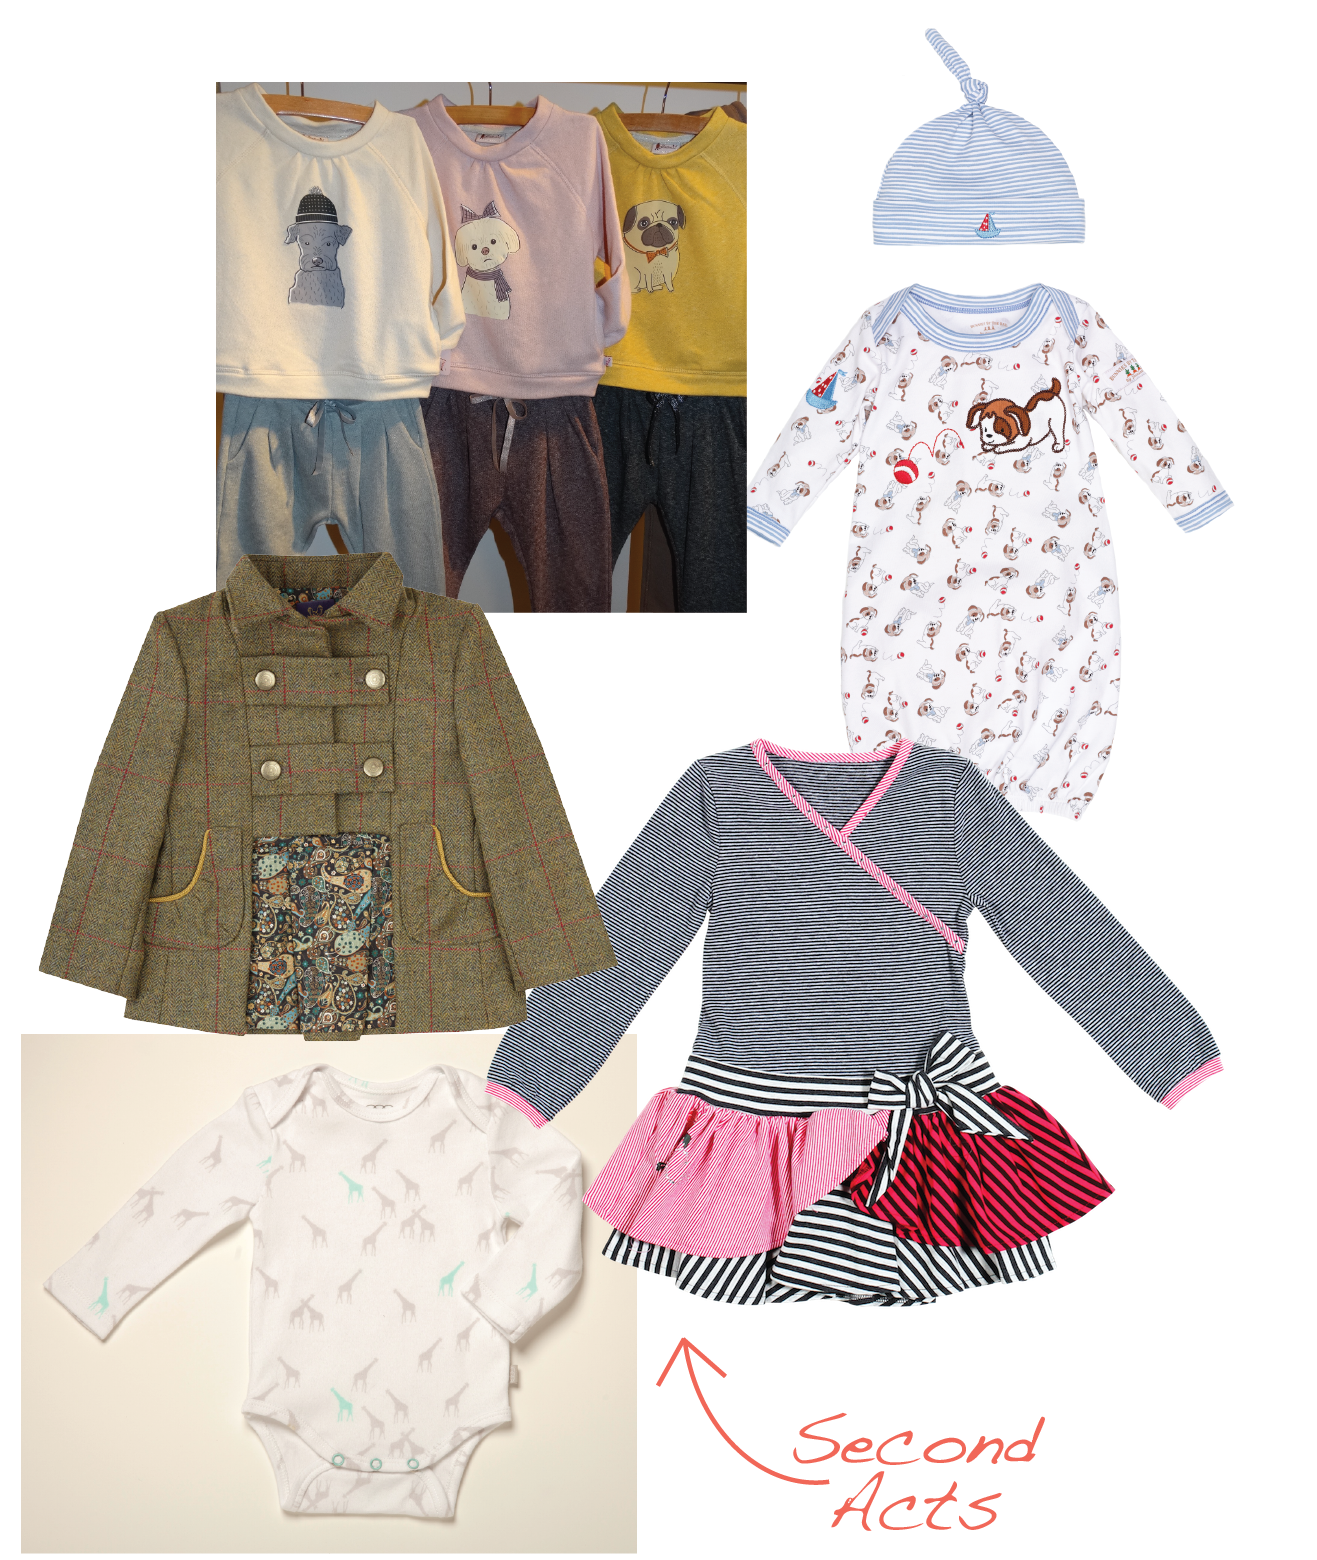 Think you know what these companies have to offer? Think again! Each is branching out with new product categories for fall. Floatimini adds sportswear, Jaxxwear welcomes Bunnies by the Bay, Coccoli pushes into playwear, Egg Baby dives into layette and Unruly Blue bows girls' wear.